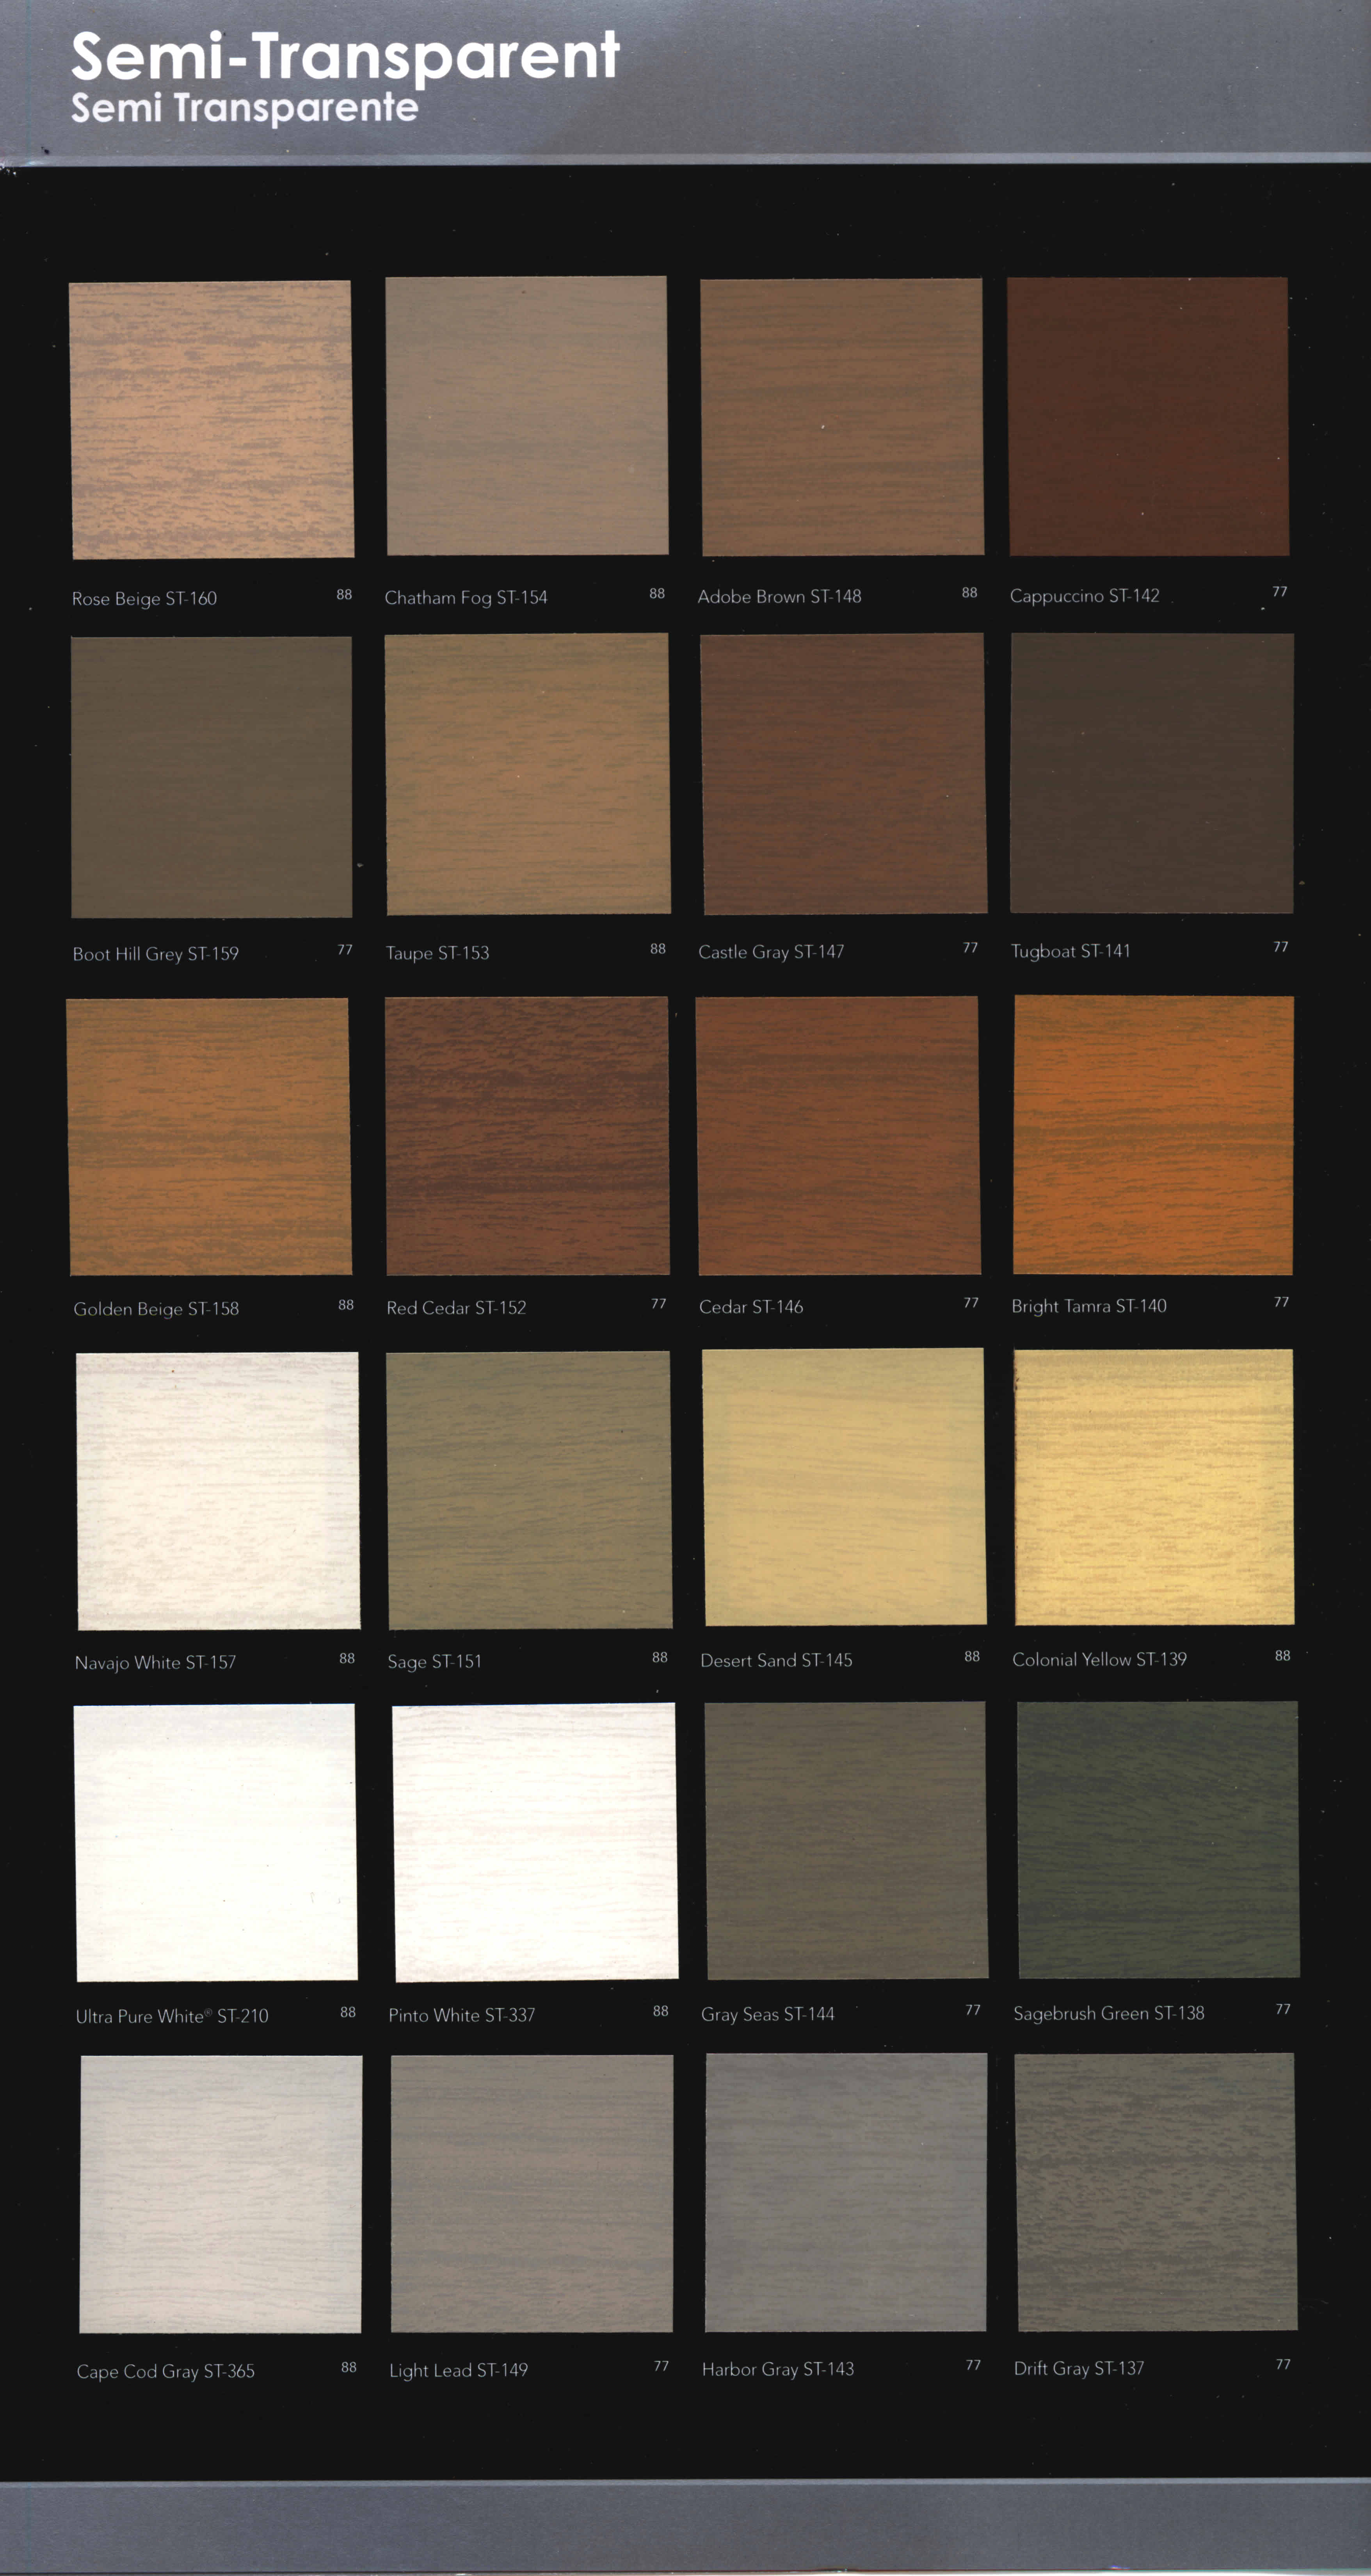 Cabot stain colors chart images cabot stain colors chart sikkens wood stain color chart nvjuhfo Gallery